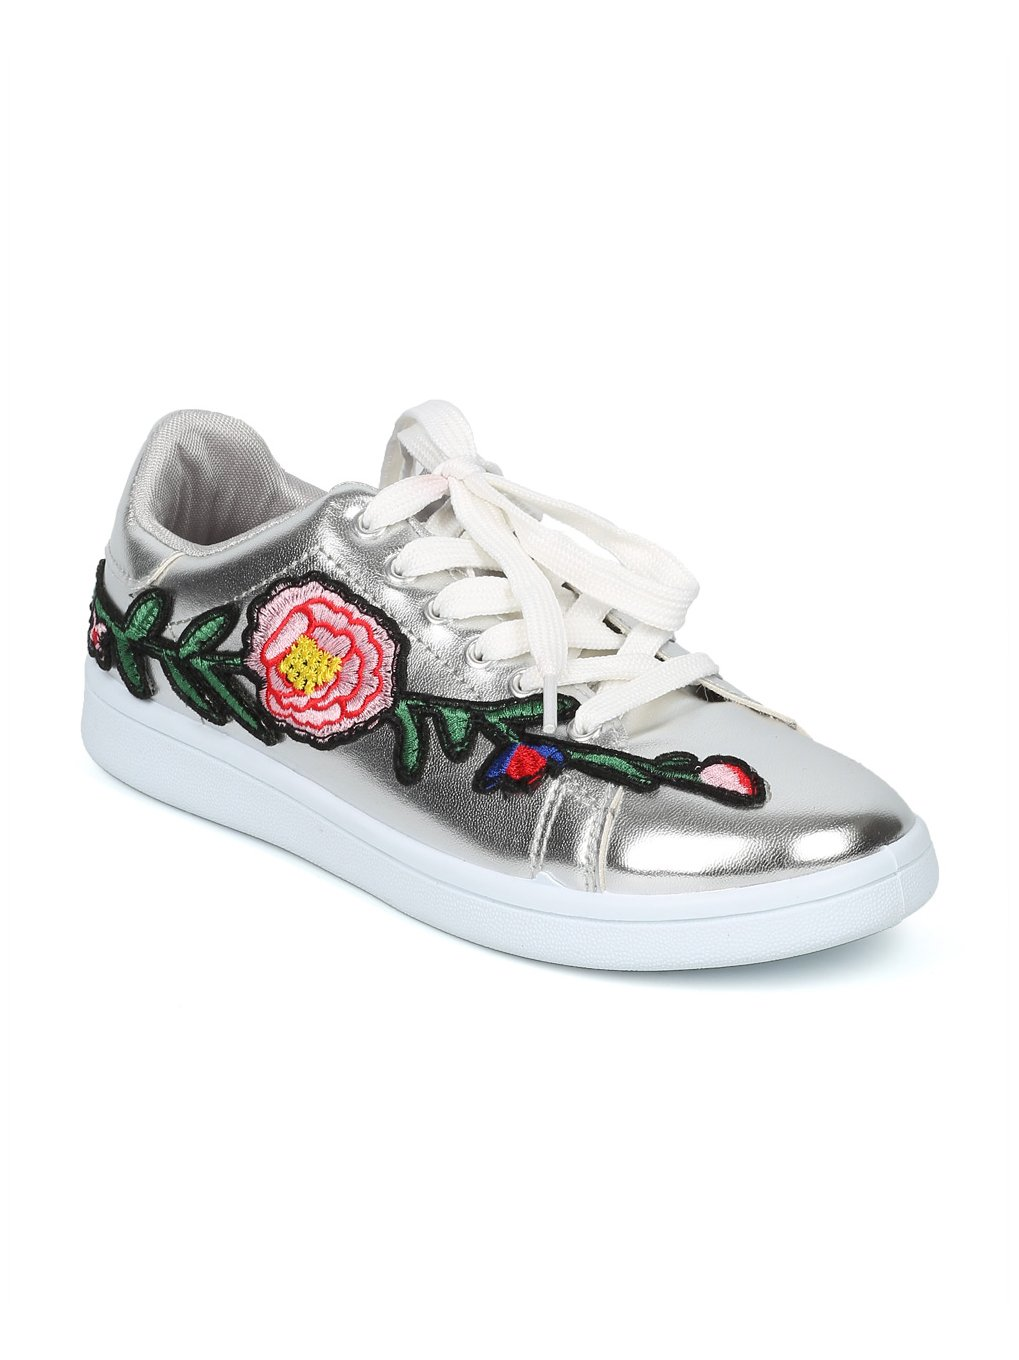 Alrisco Women Lace Up Floral Embroidered Patch Low Top Sneaker HF82 - Silver Metallic (Size: 8.0)